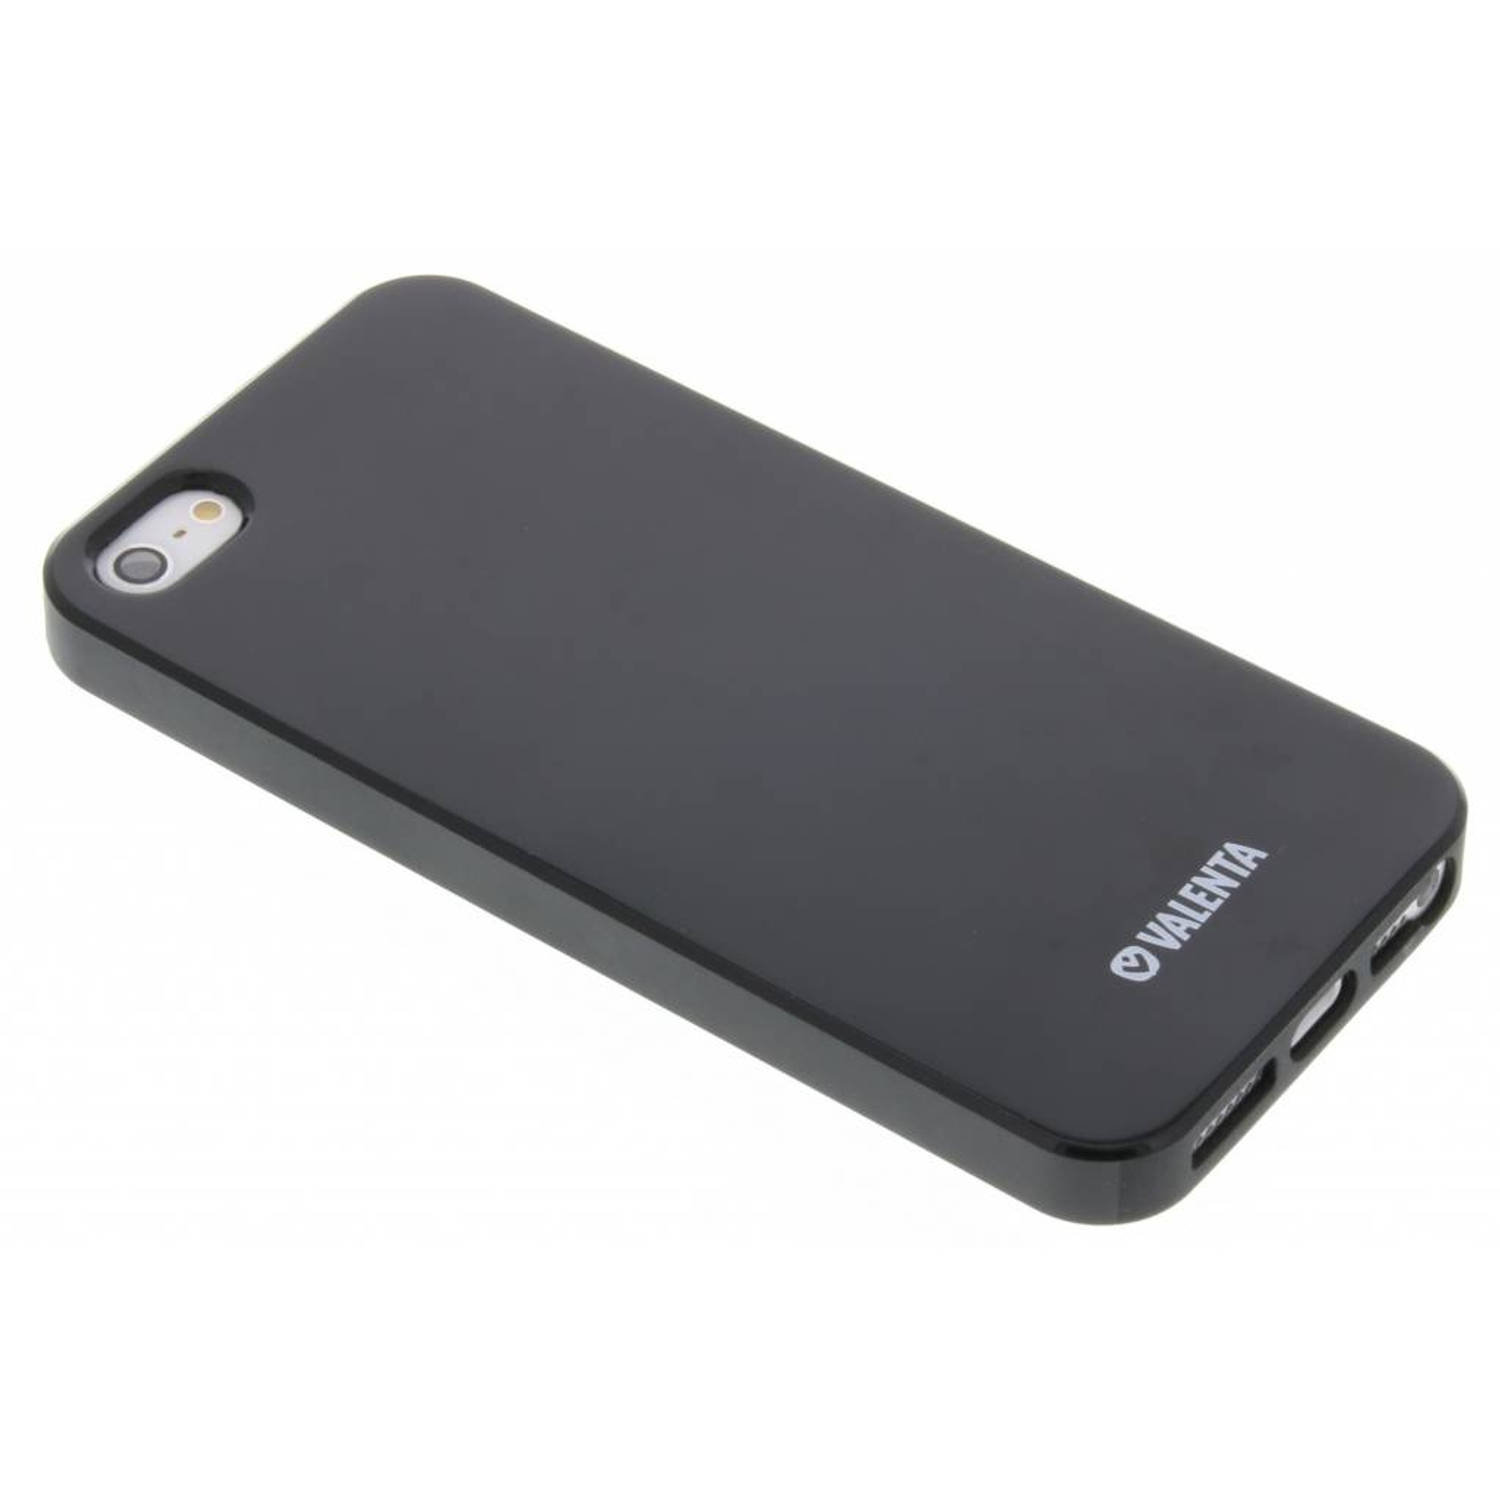 Zwart Click-On Active voor de iPhone 5 / 5s / SE